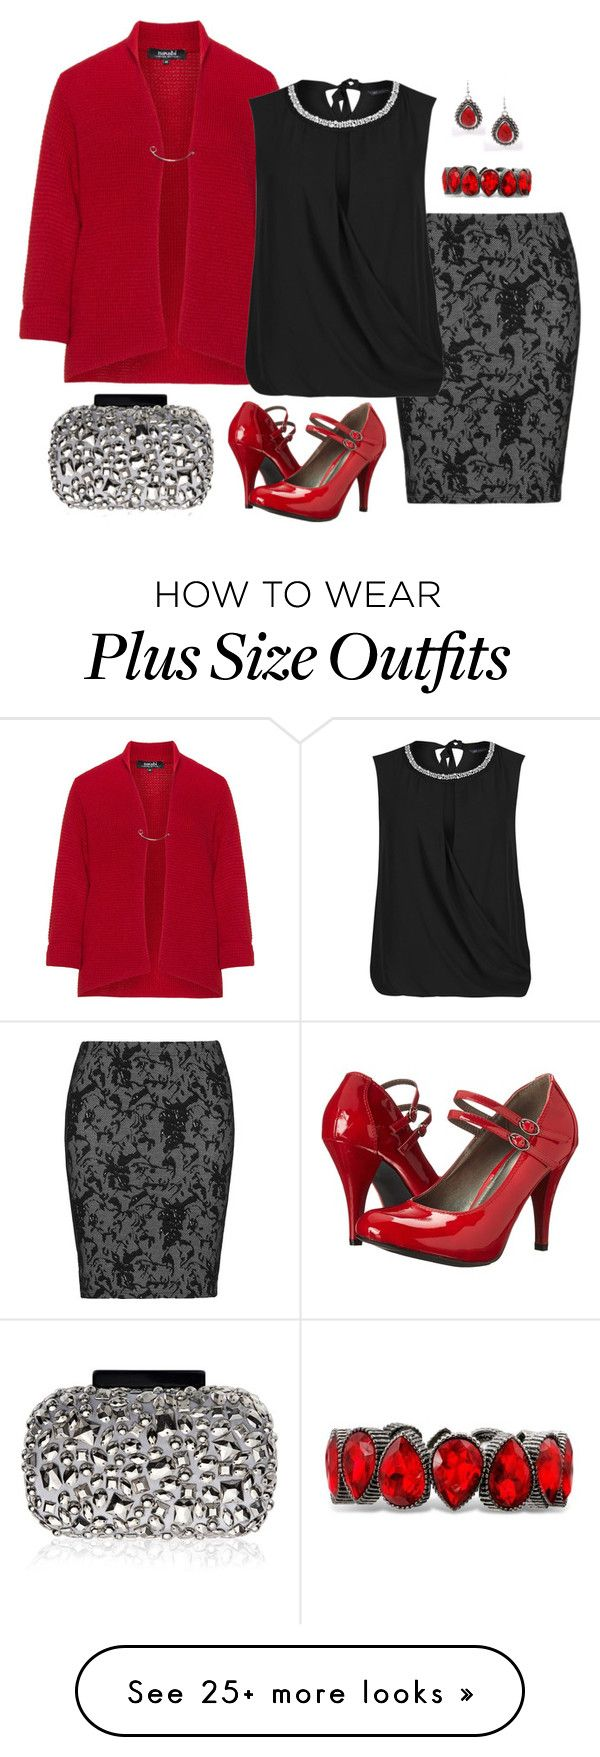 """Plus Size - Office Holiday Party"" by elise1114 on Polyvore featuring navabi, Zhenzi, M&S Collection, Lipsy, Gabriella Rocha and plus size clothing"